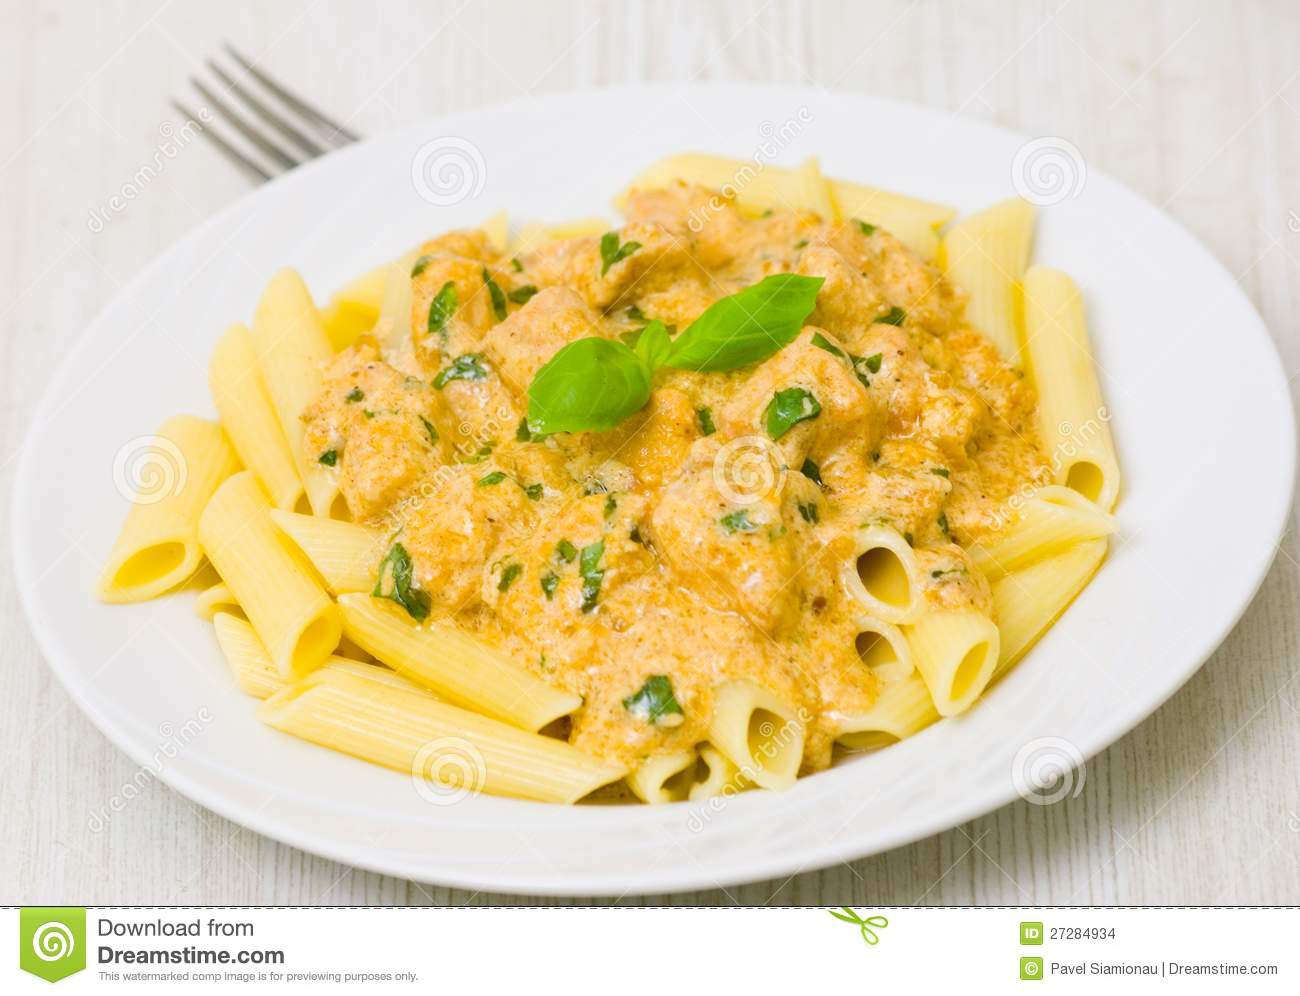 Penne Pasta With Chicken Meat, Cream Sauce Stock Images - Image ...